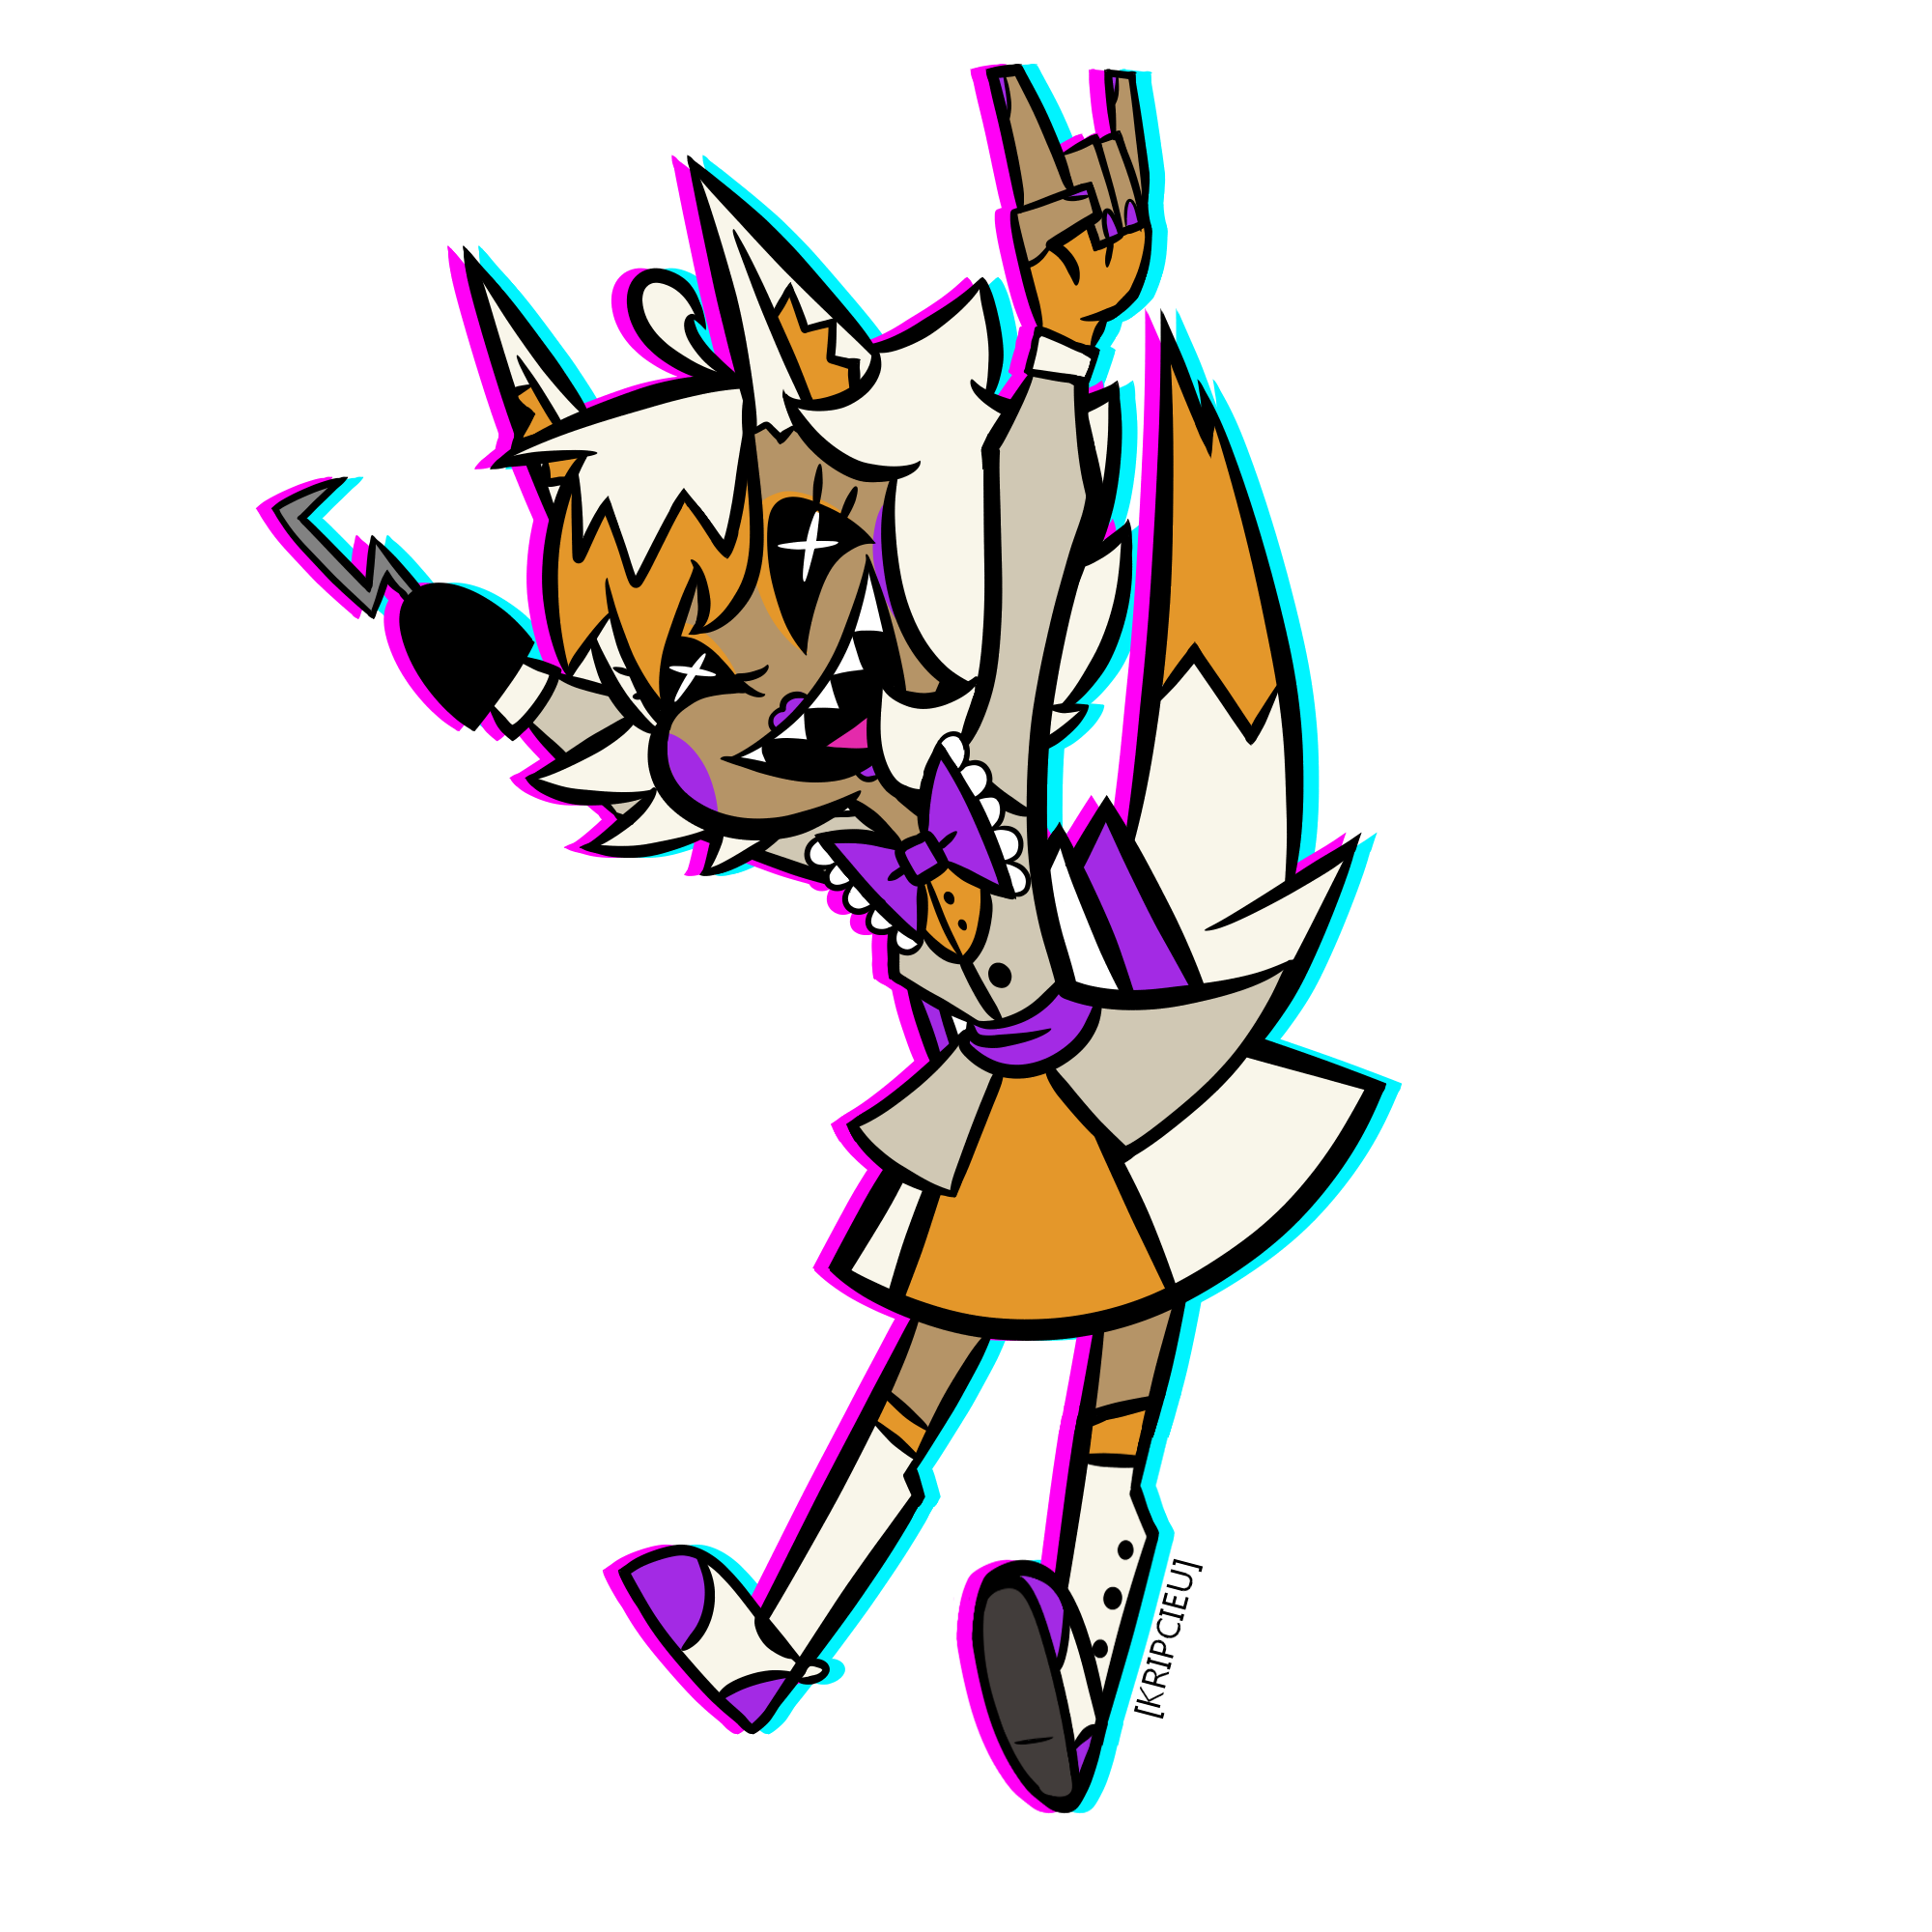 2000x2000 i really like drawing human lolbit for some reason